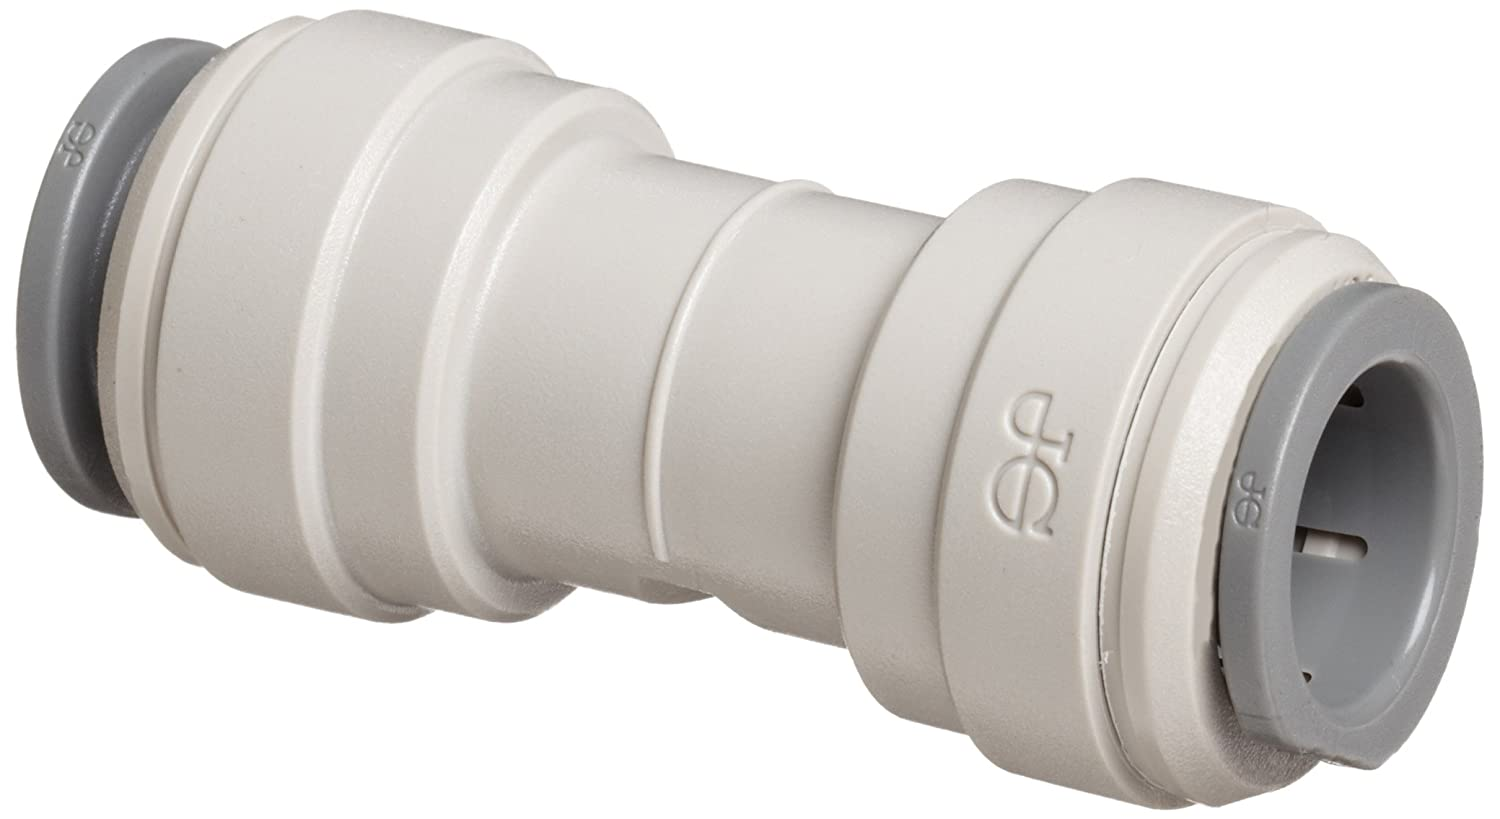 1//4 Tube OD John Guest Acetal Copolymer Tube Fitting Union Straight Connector Pack of 10